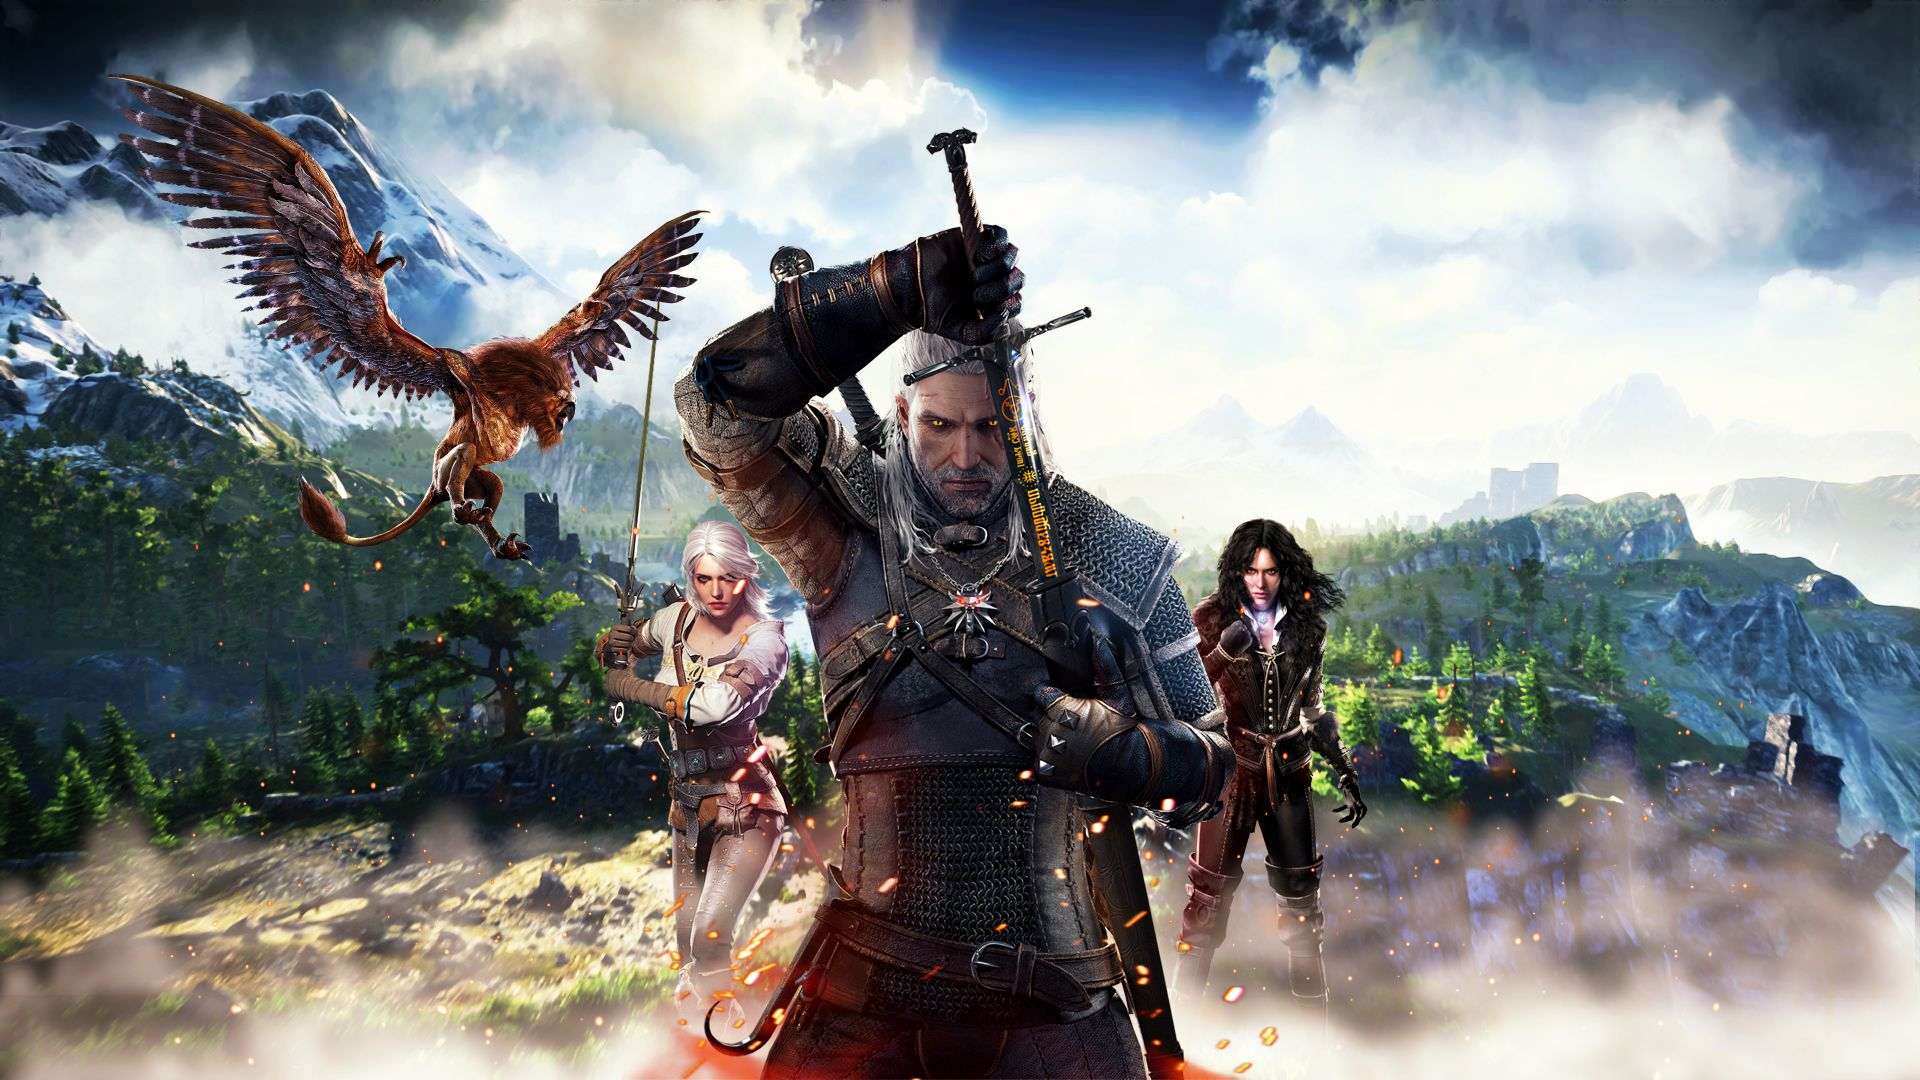 Witcher, Image